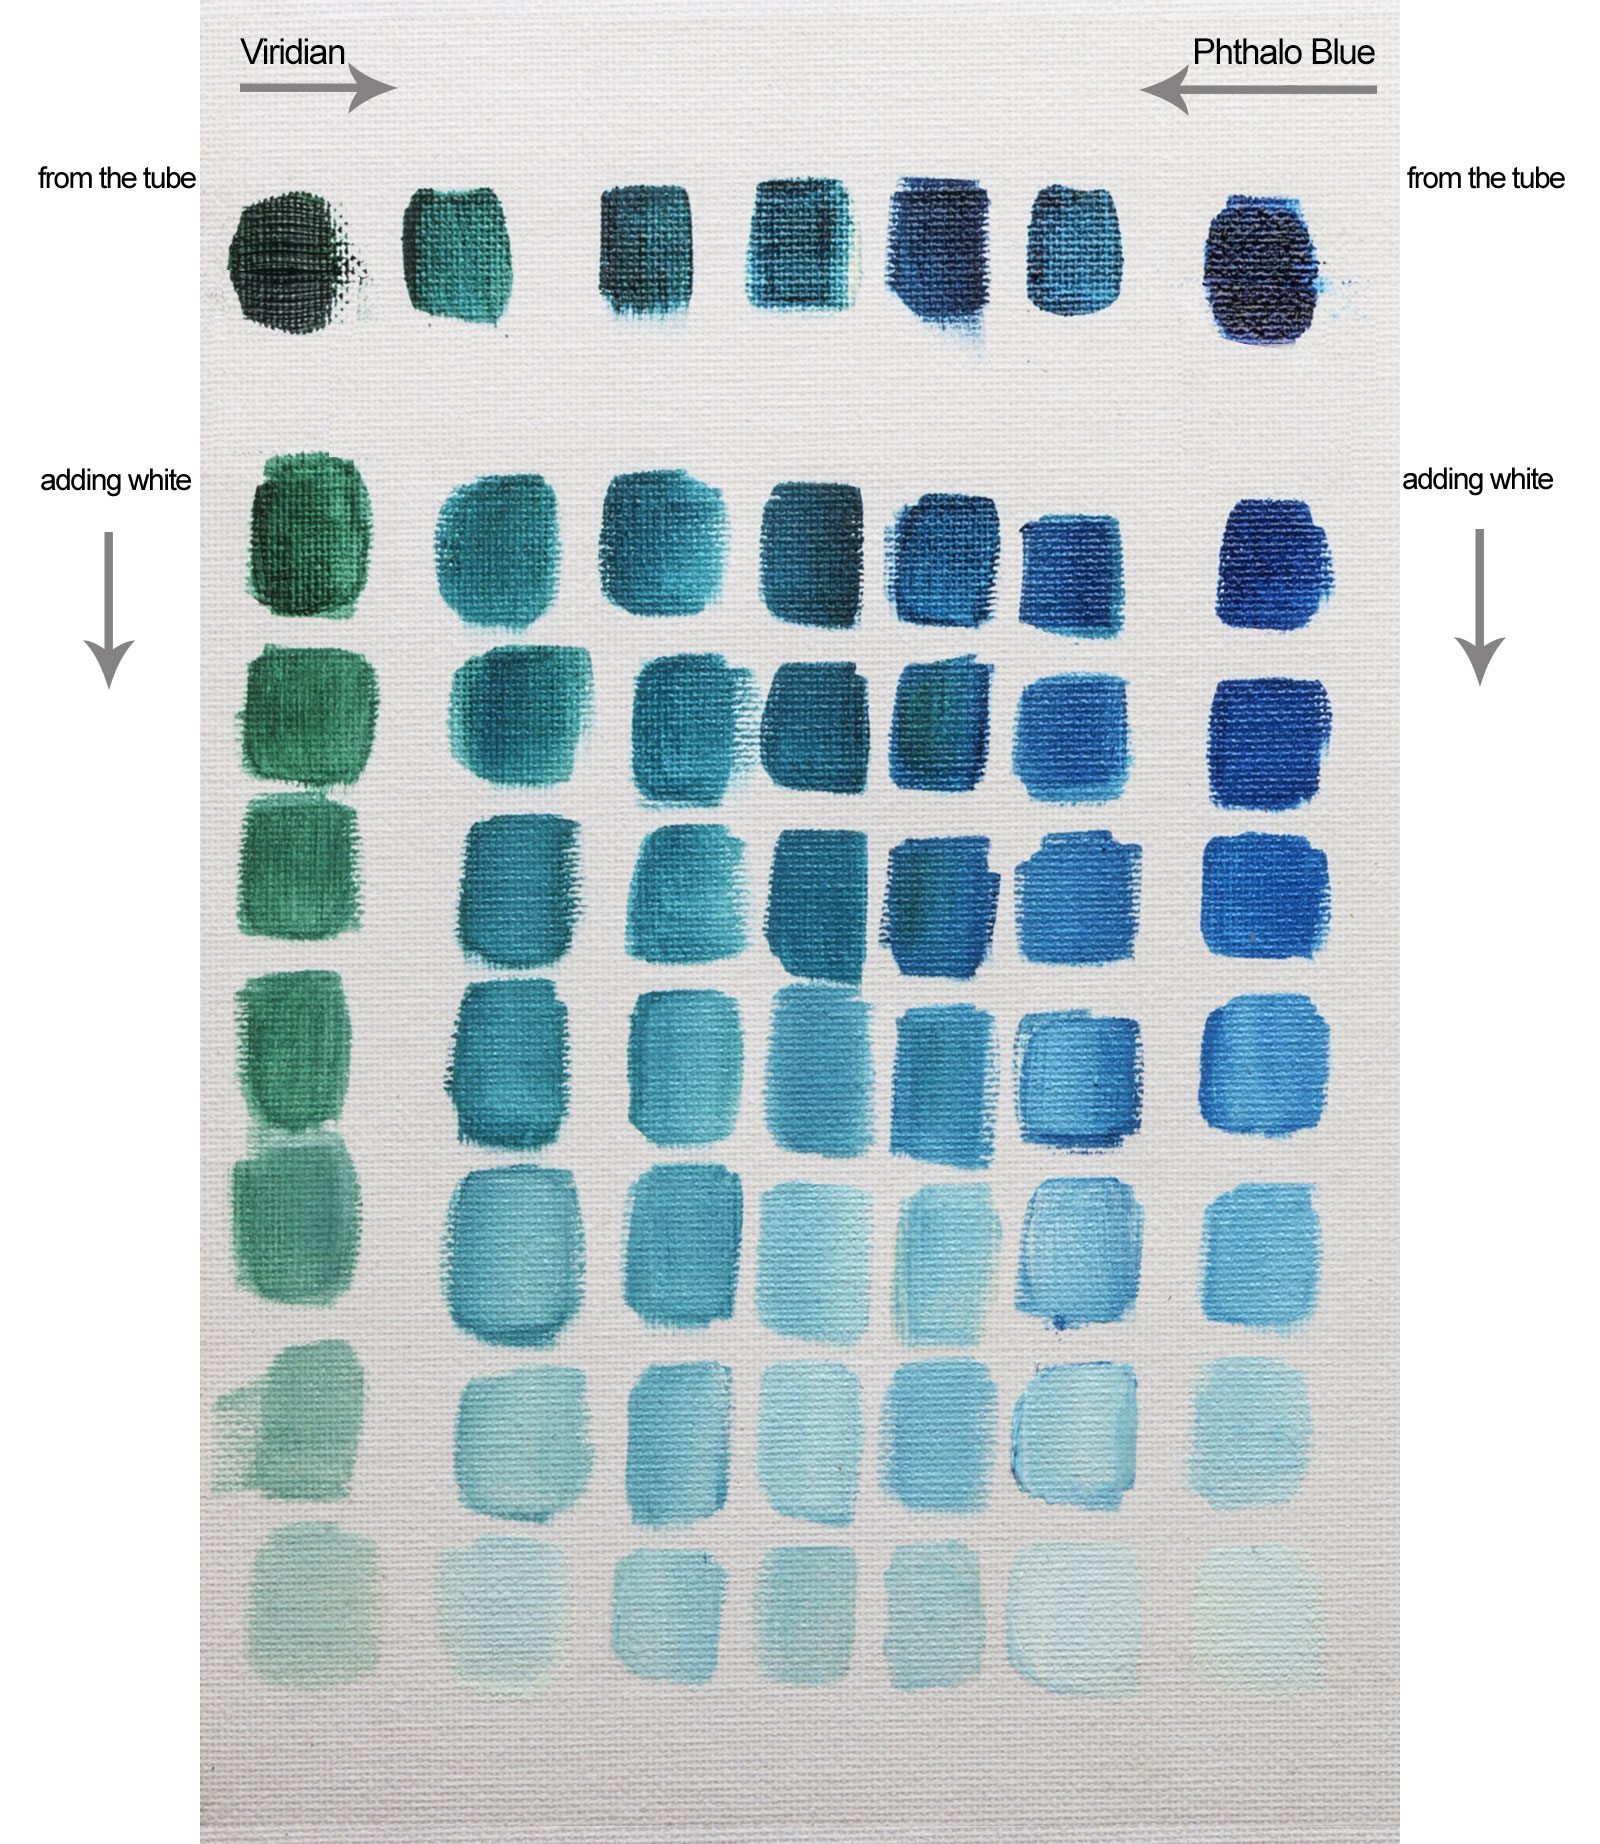 Colour mixing with williamsburg viridian oil paint jacksons art williamsburg viridian mixing with phthalo blue makes a range of sea greens and turquoise blues note my first chart was this phthalo blue board and i had nvjuhfo Choice Image